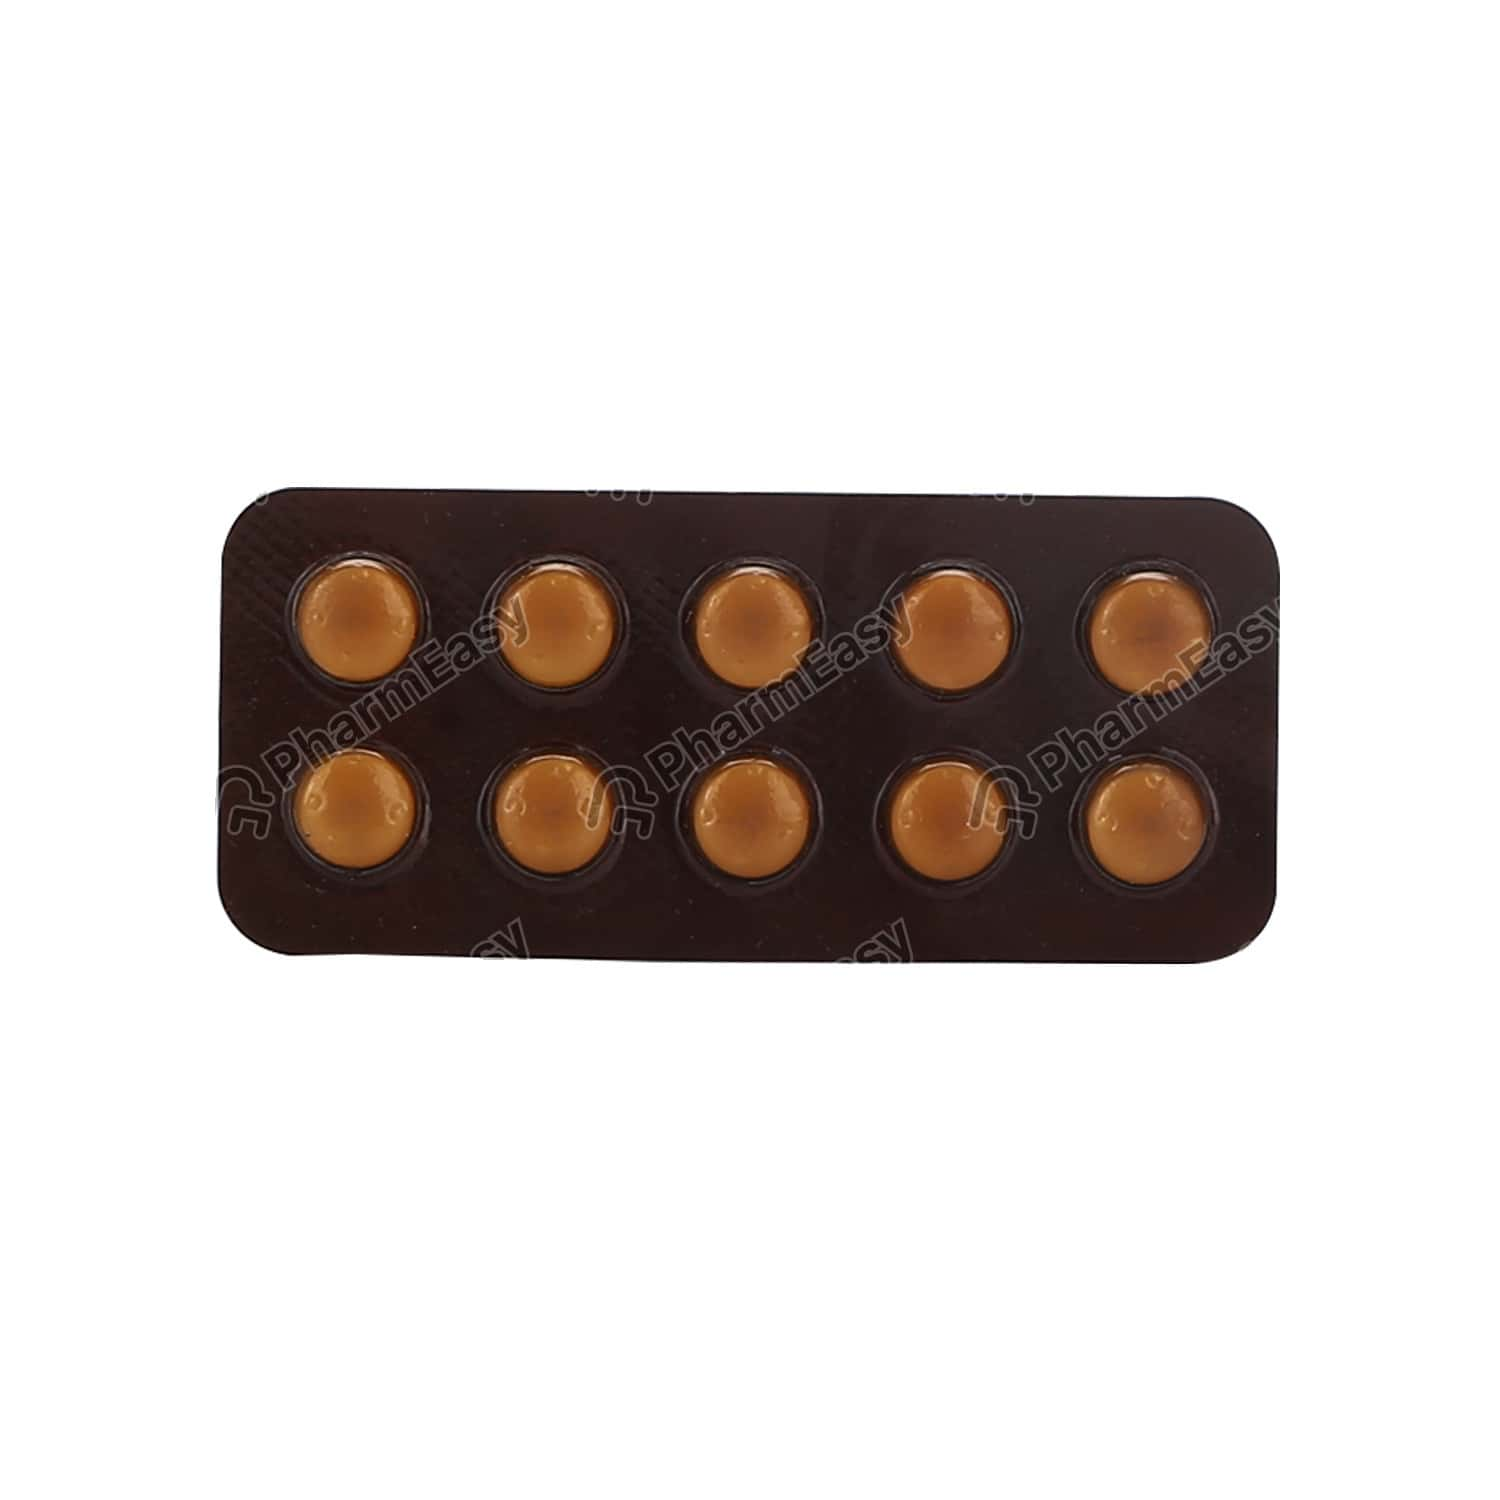 Sterio 8mg Tablet